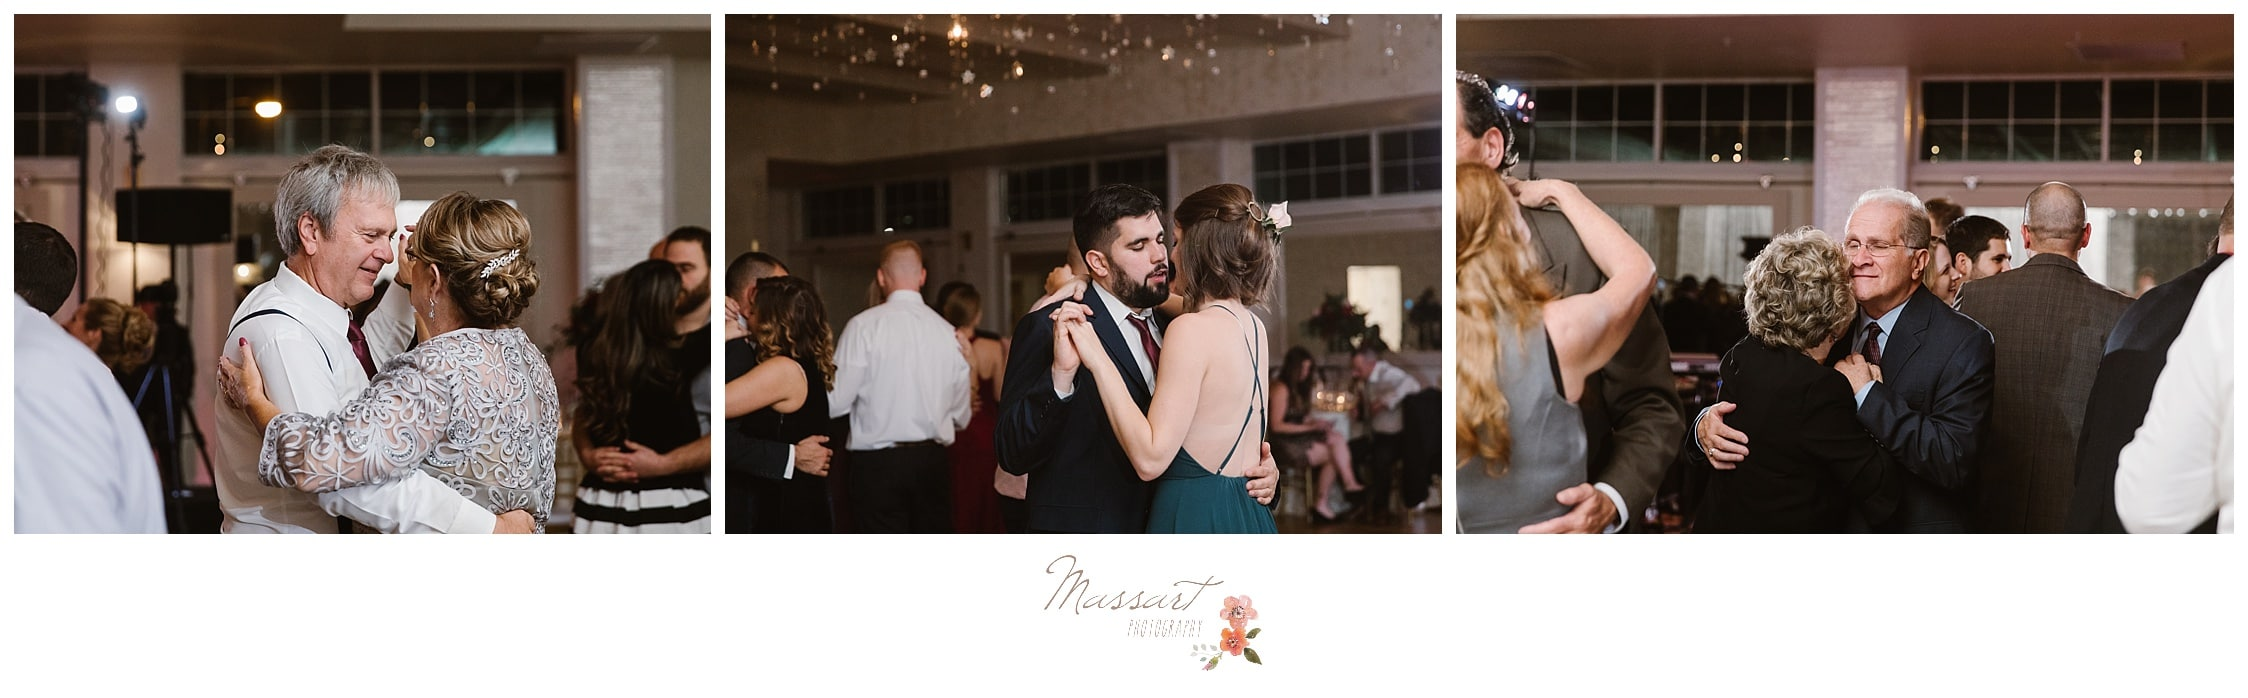 Couples dance together during the wedding reception photographed by Massart Photography RI